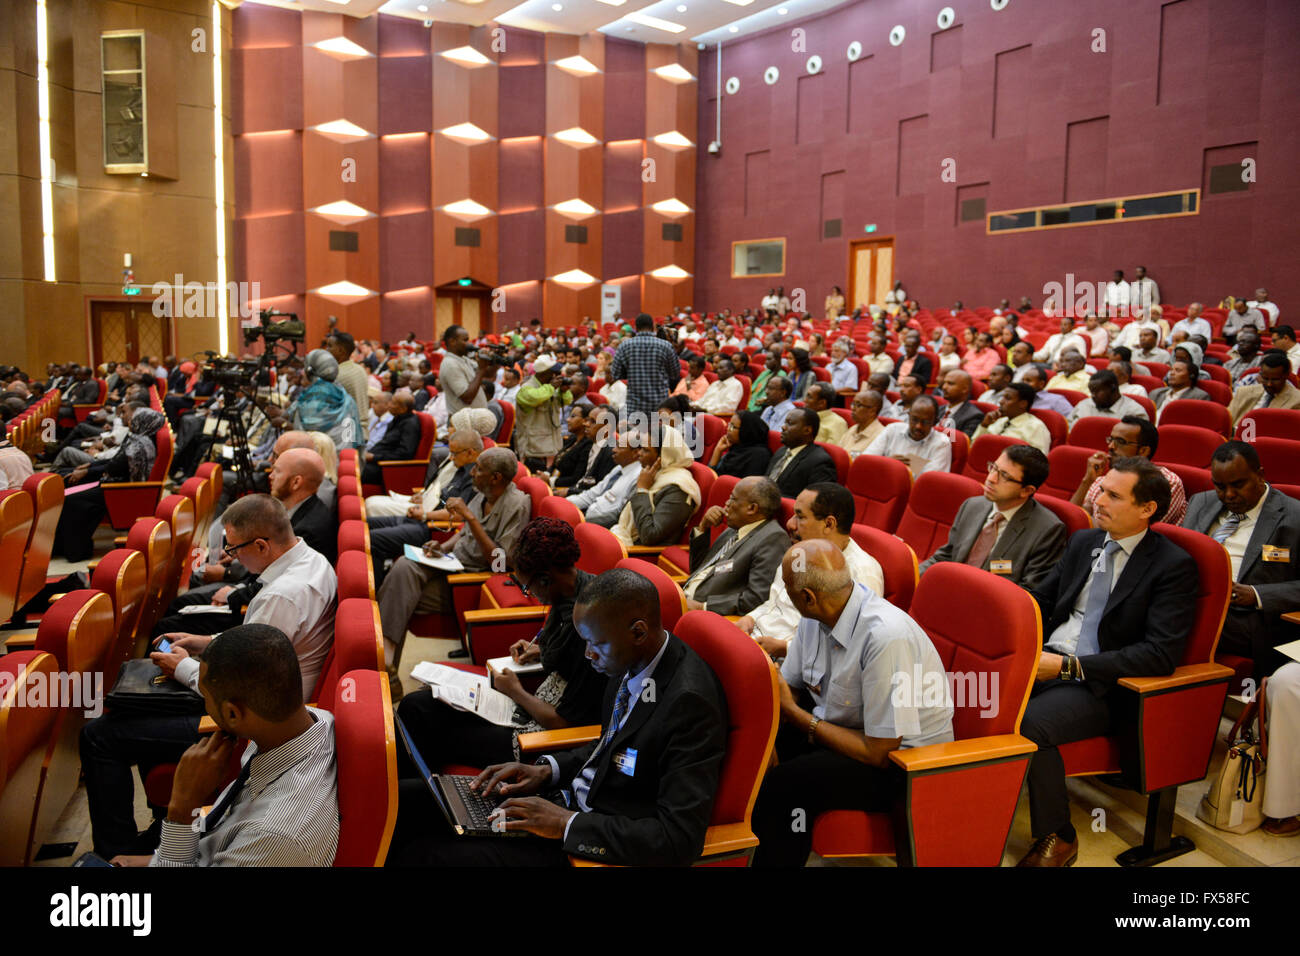 DJIBOUTI conference IGAD Business Forum 2015 / DSCHIBUTI Konferenz IGAD Business Forum 2015 - Stock Image